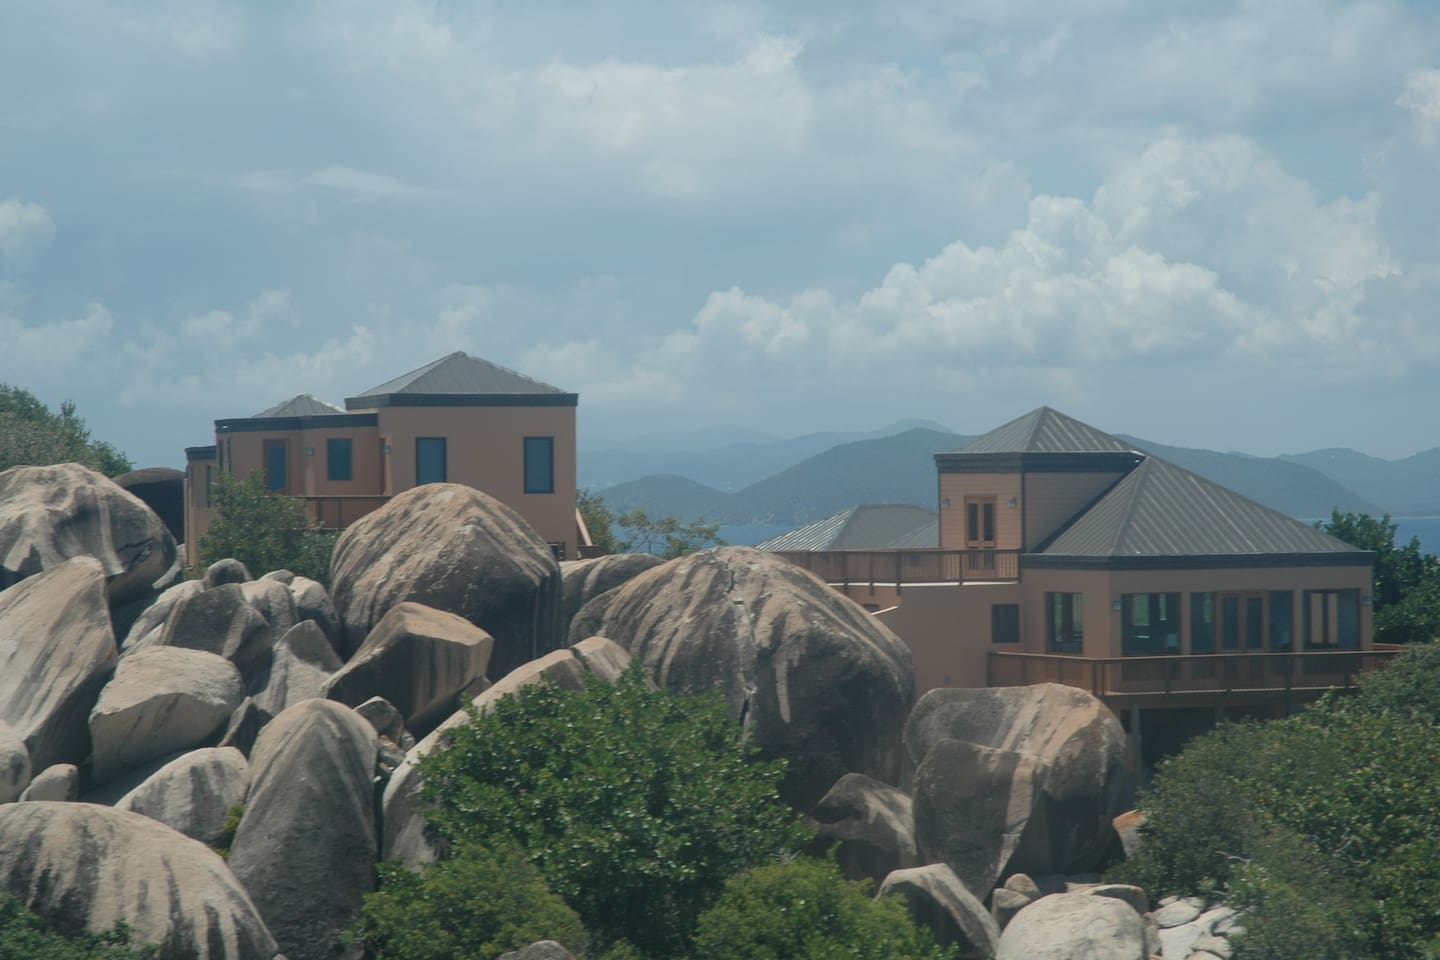 Amateras was built in and around the boulders for which Virgin Gorda is famous.  Sitting on the highest point on the Baths side of the island offers spectacular views of sunrise and sunset.